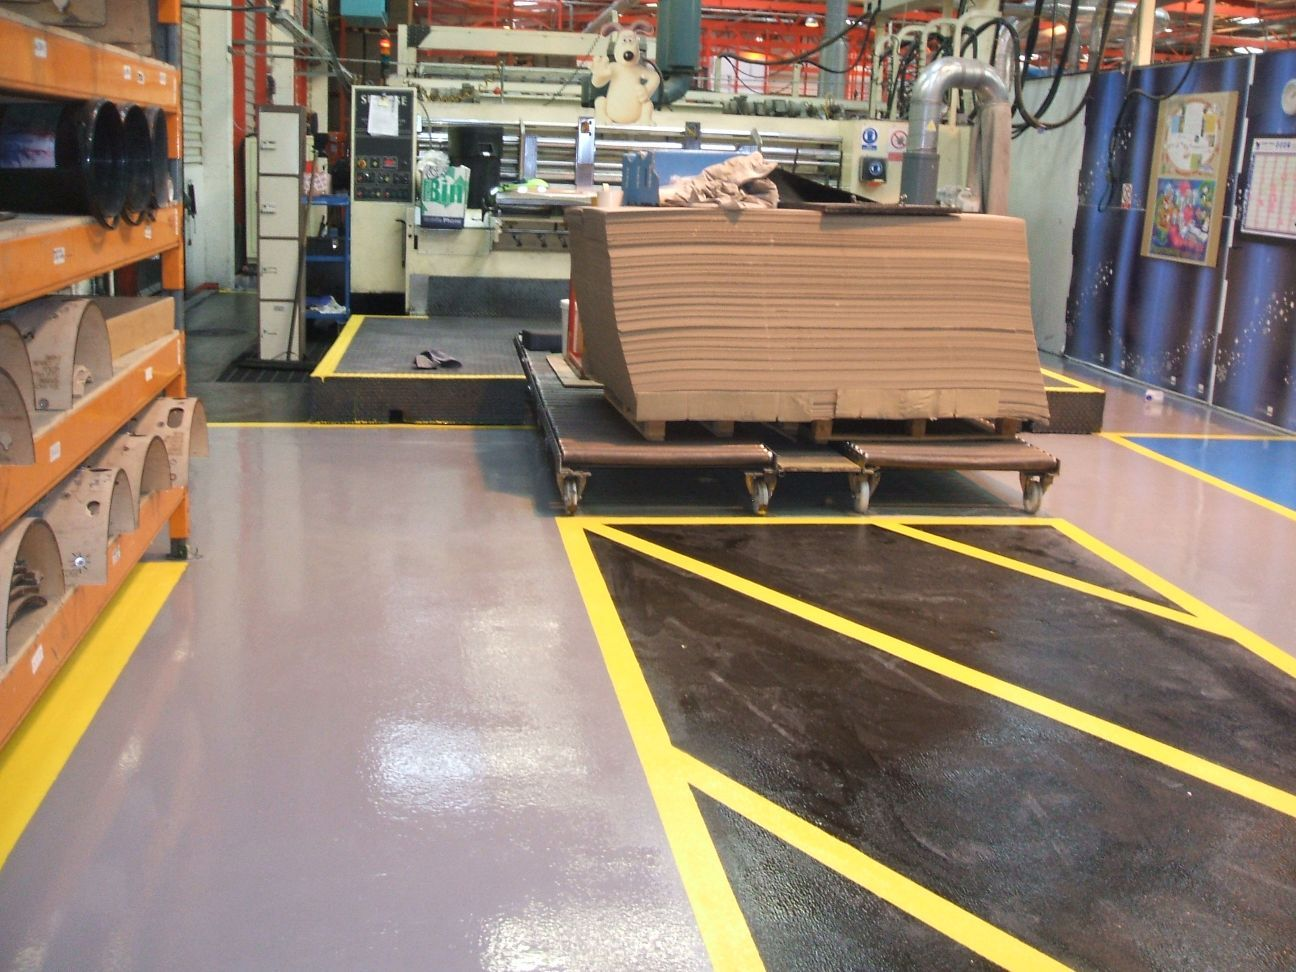 Concrete flooring for packaging clients gallagher flooring for Gallagher flooring